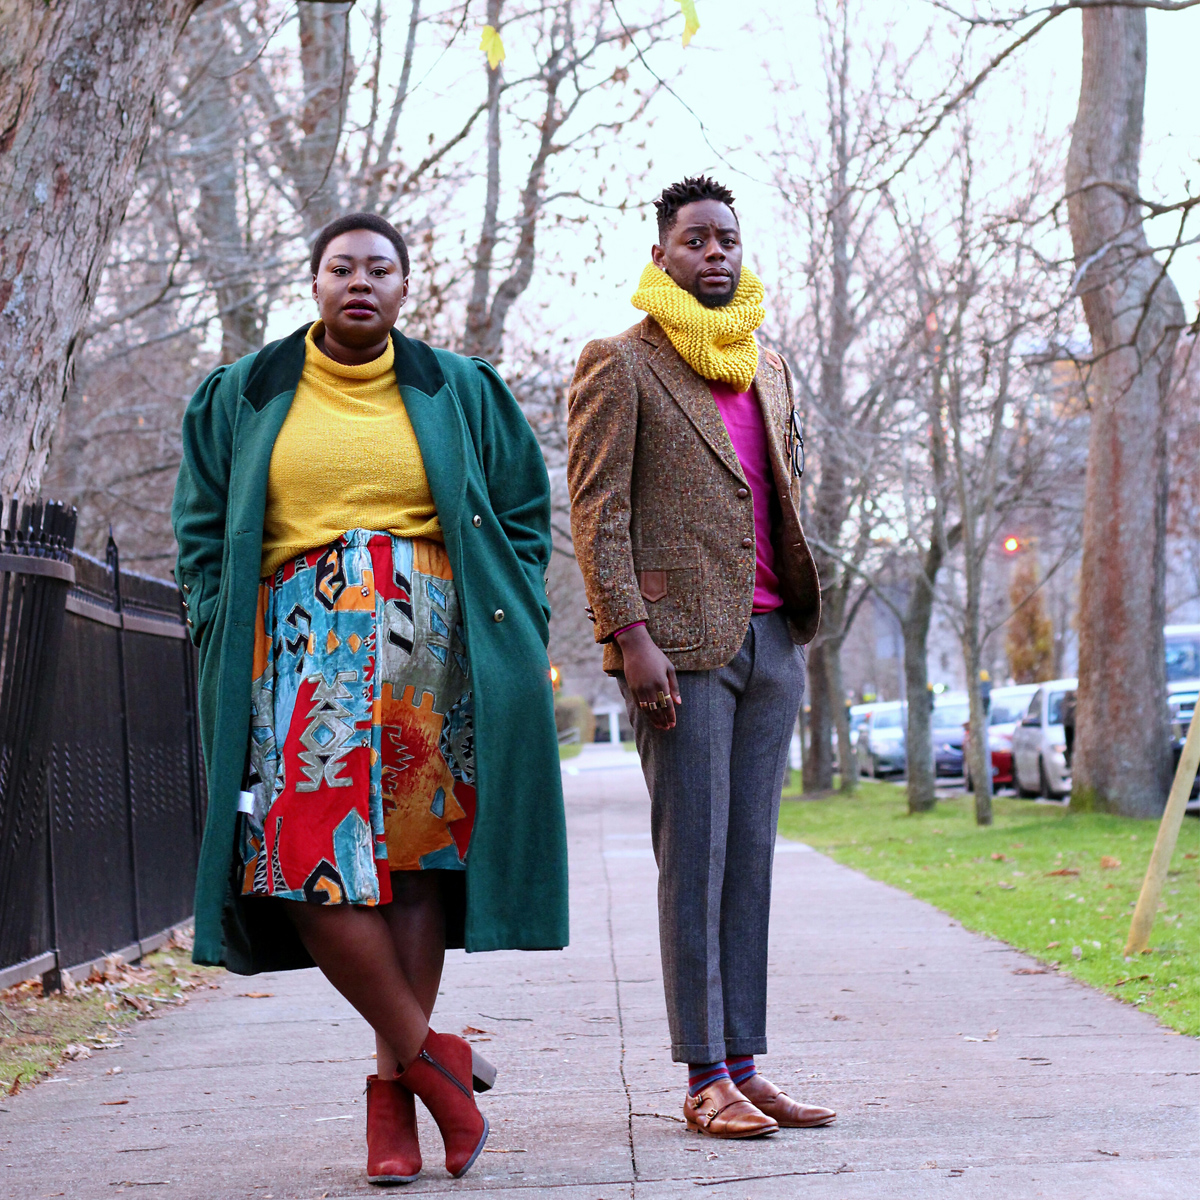 fashion-duos-fashion-siblings-fashion-brother-and-sister-style-duos-style-siblings-bright-winter-colors-06